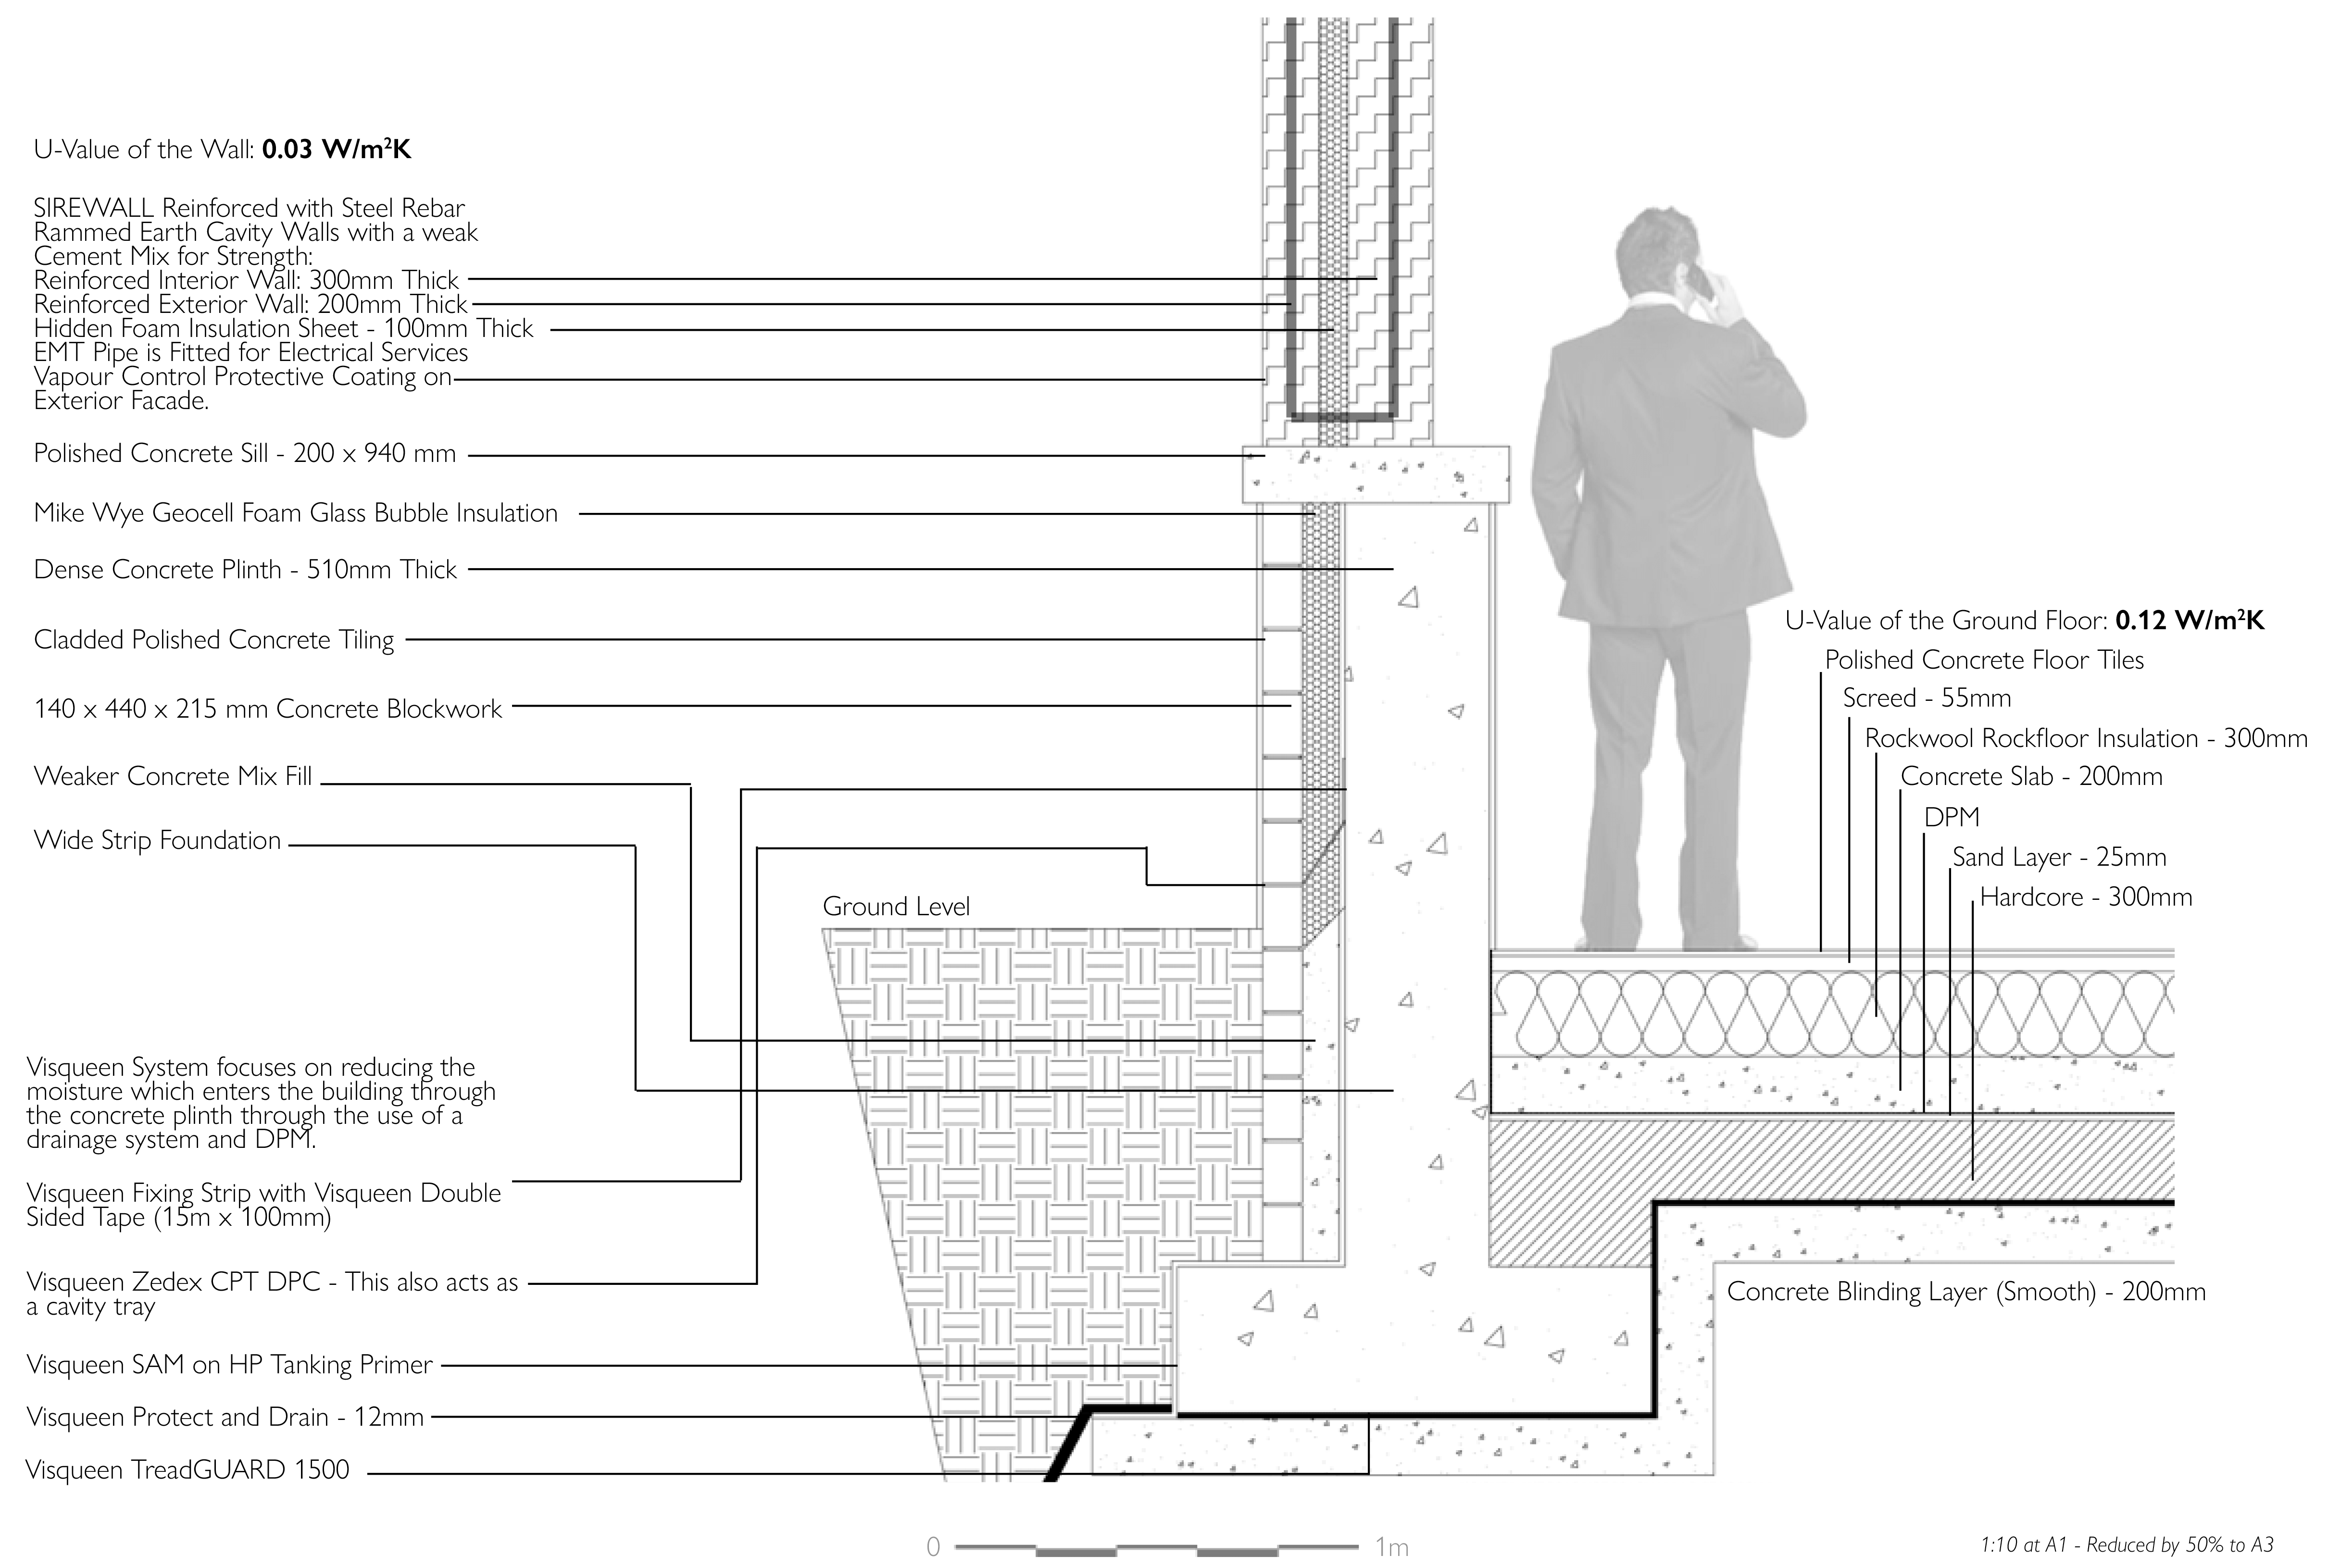 An Upskilling Expansion - A Ground Floor to Wall Detail